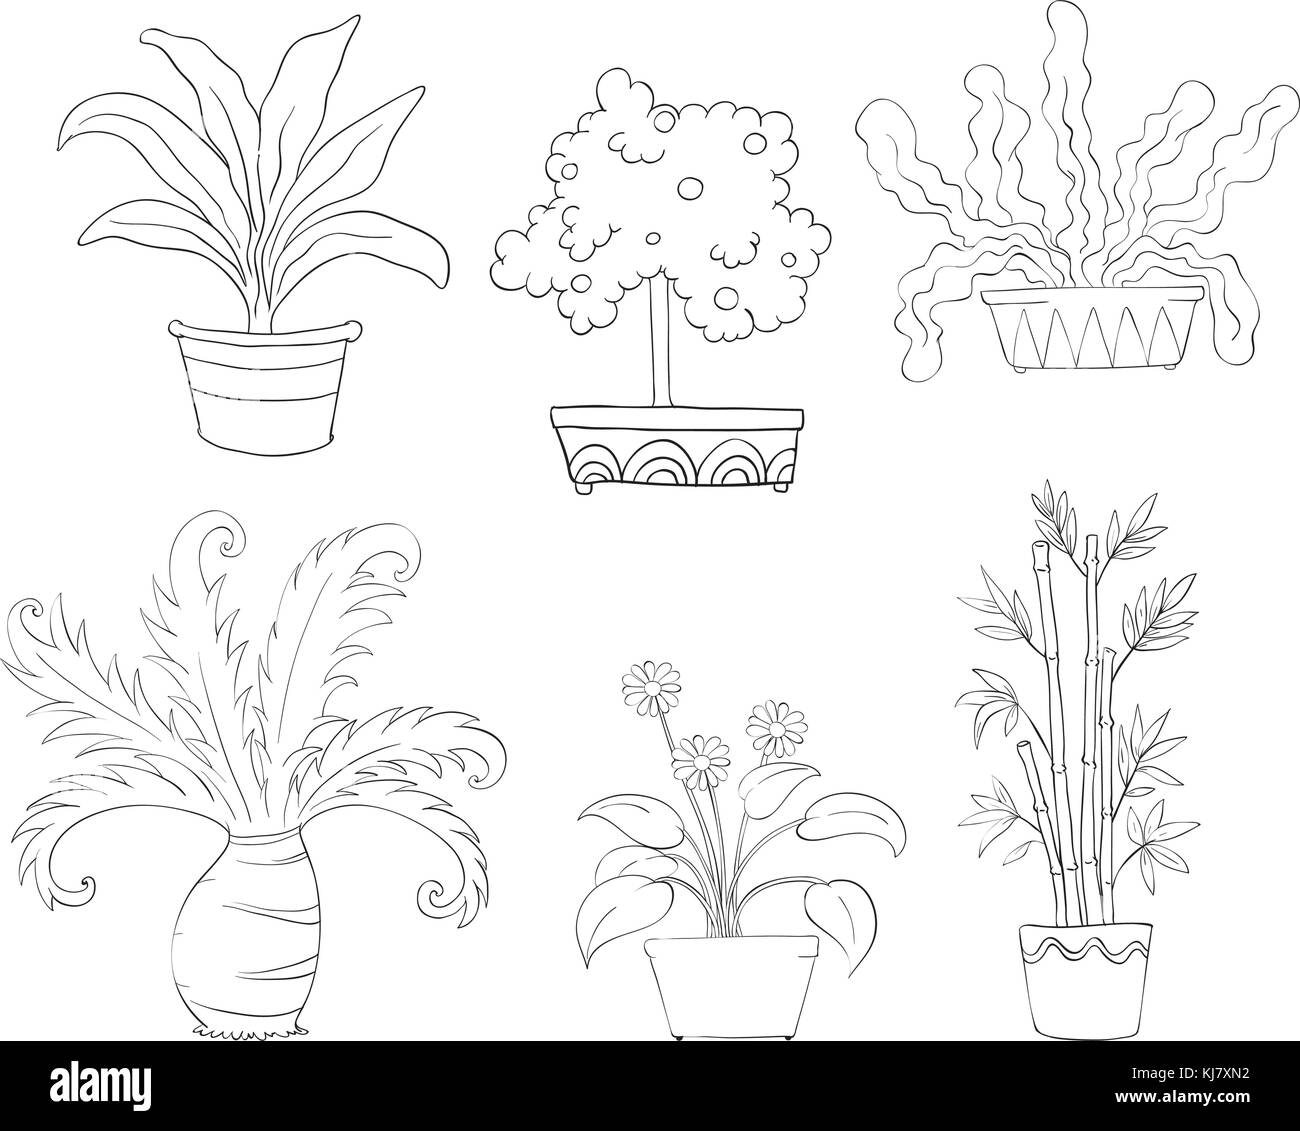 Illustration Of The Six Different Kinds Of Plants On A White Stock